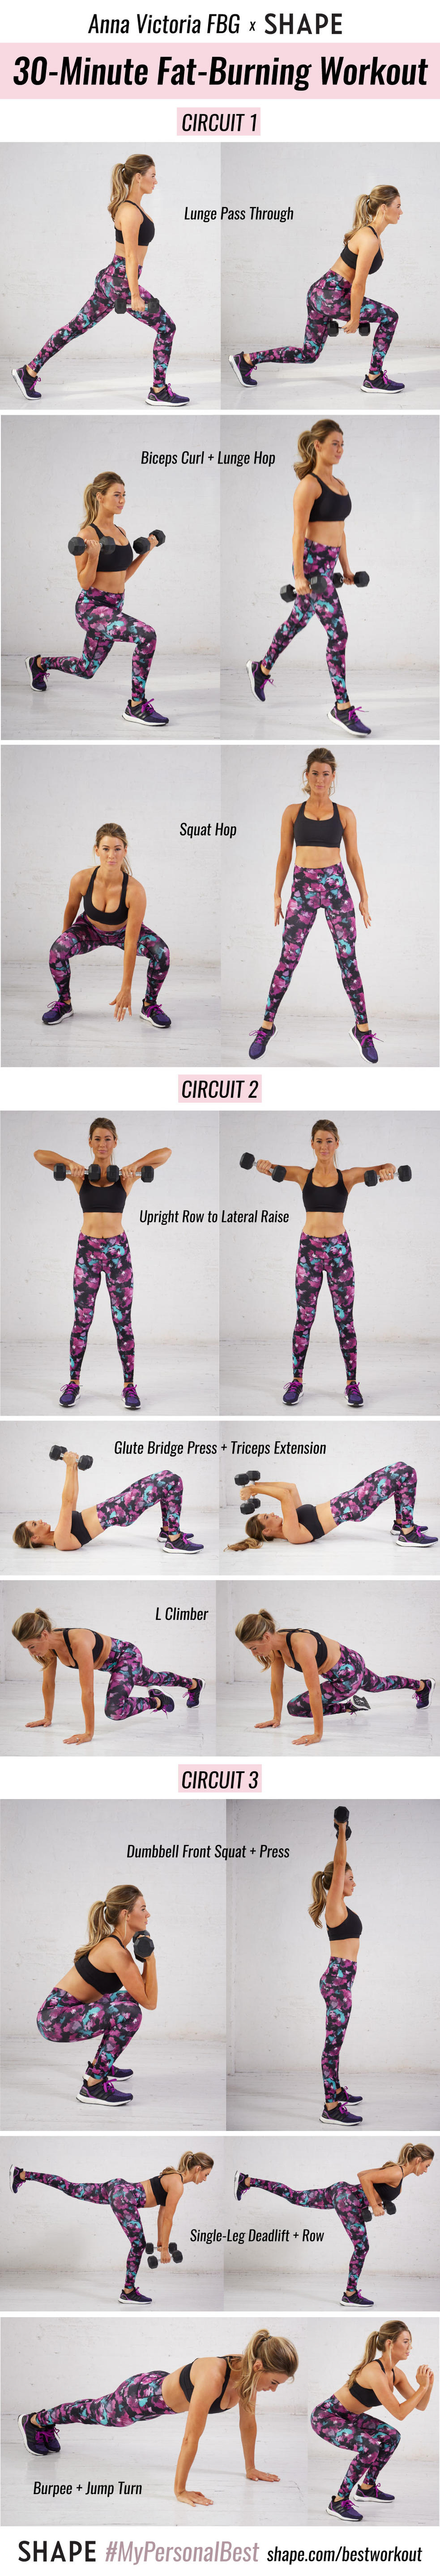 Chart of Fat-Burning Workout from Anna Victoria